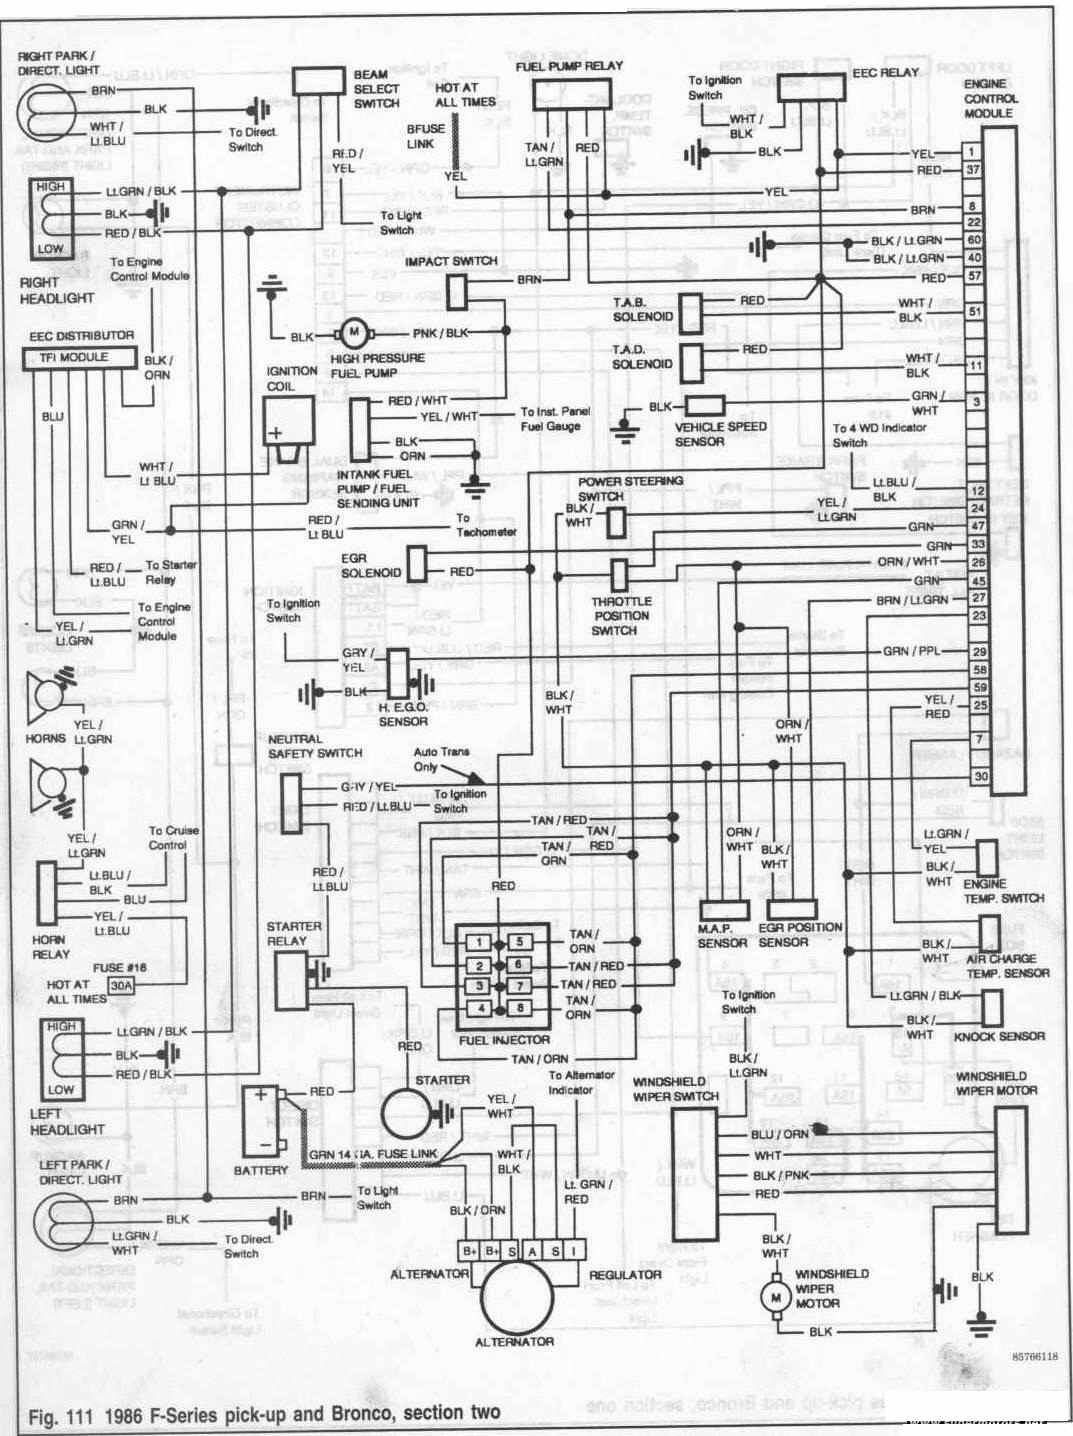 1986 F150 Wiring Diagram Ford F-150 Starter Wiring Diagram